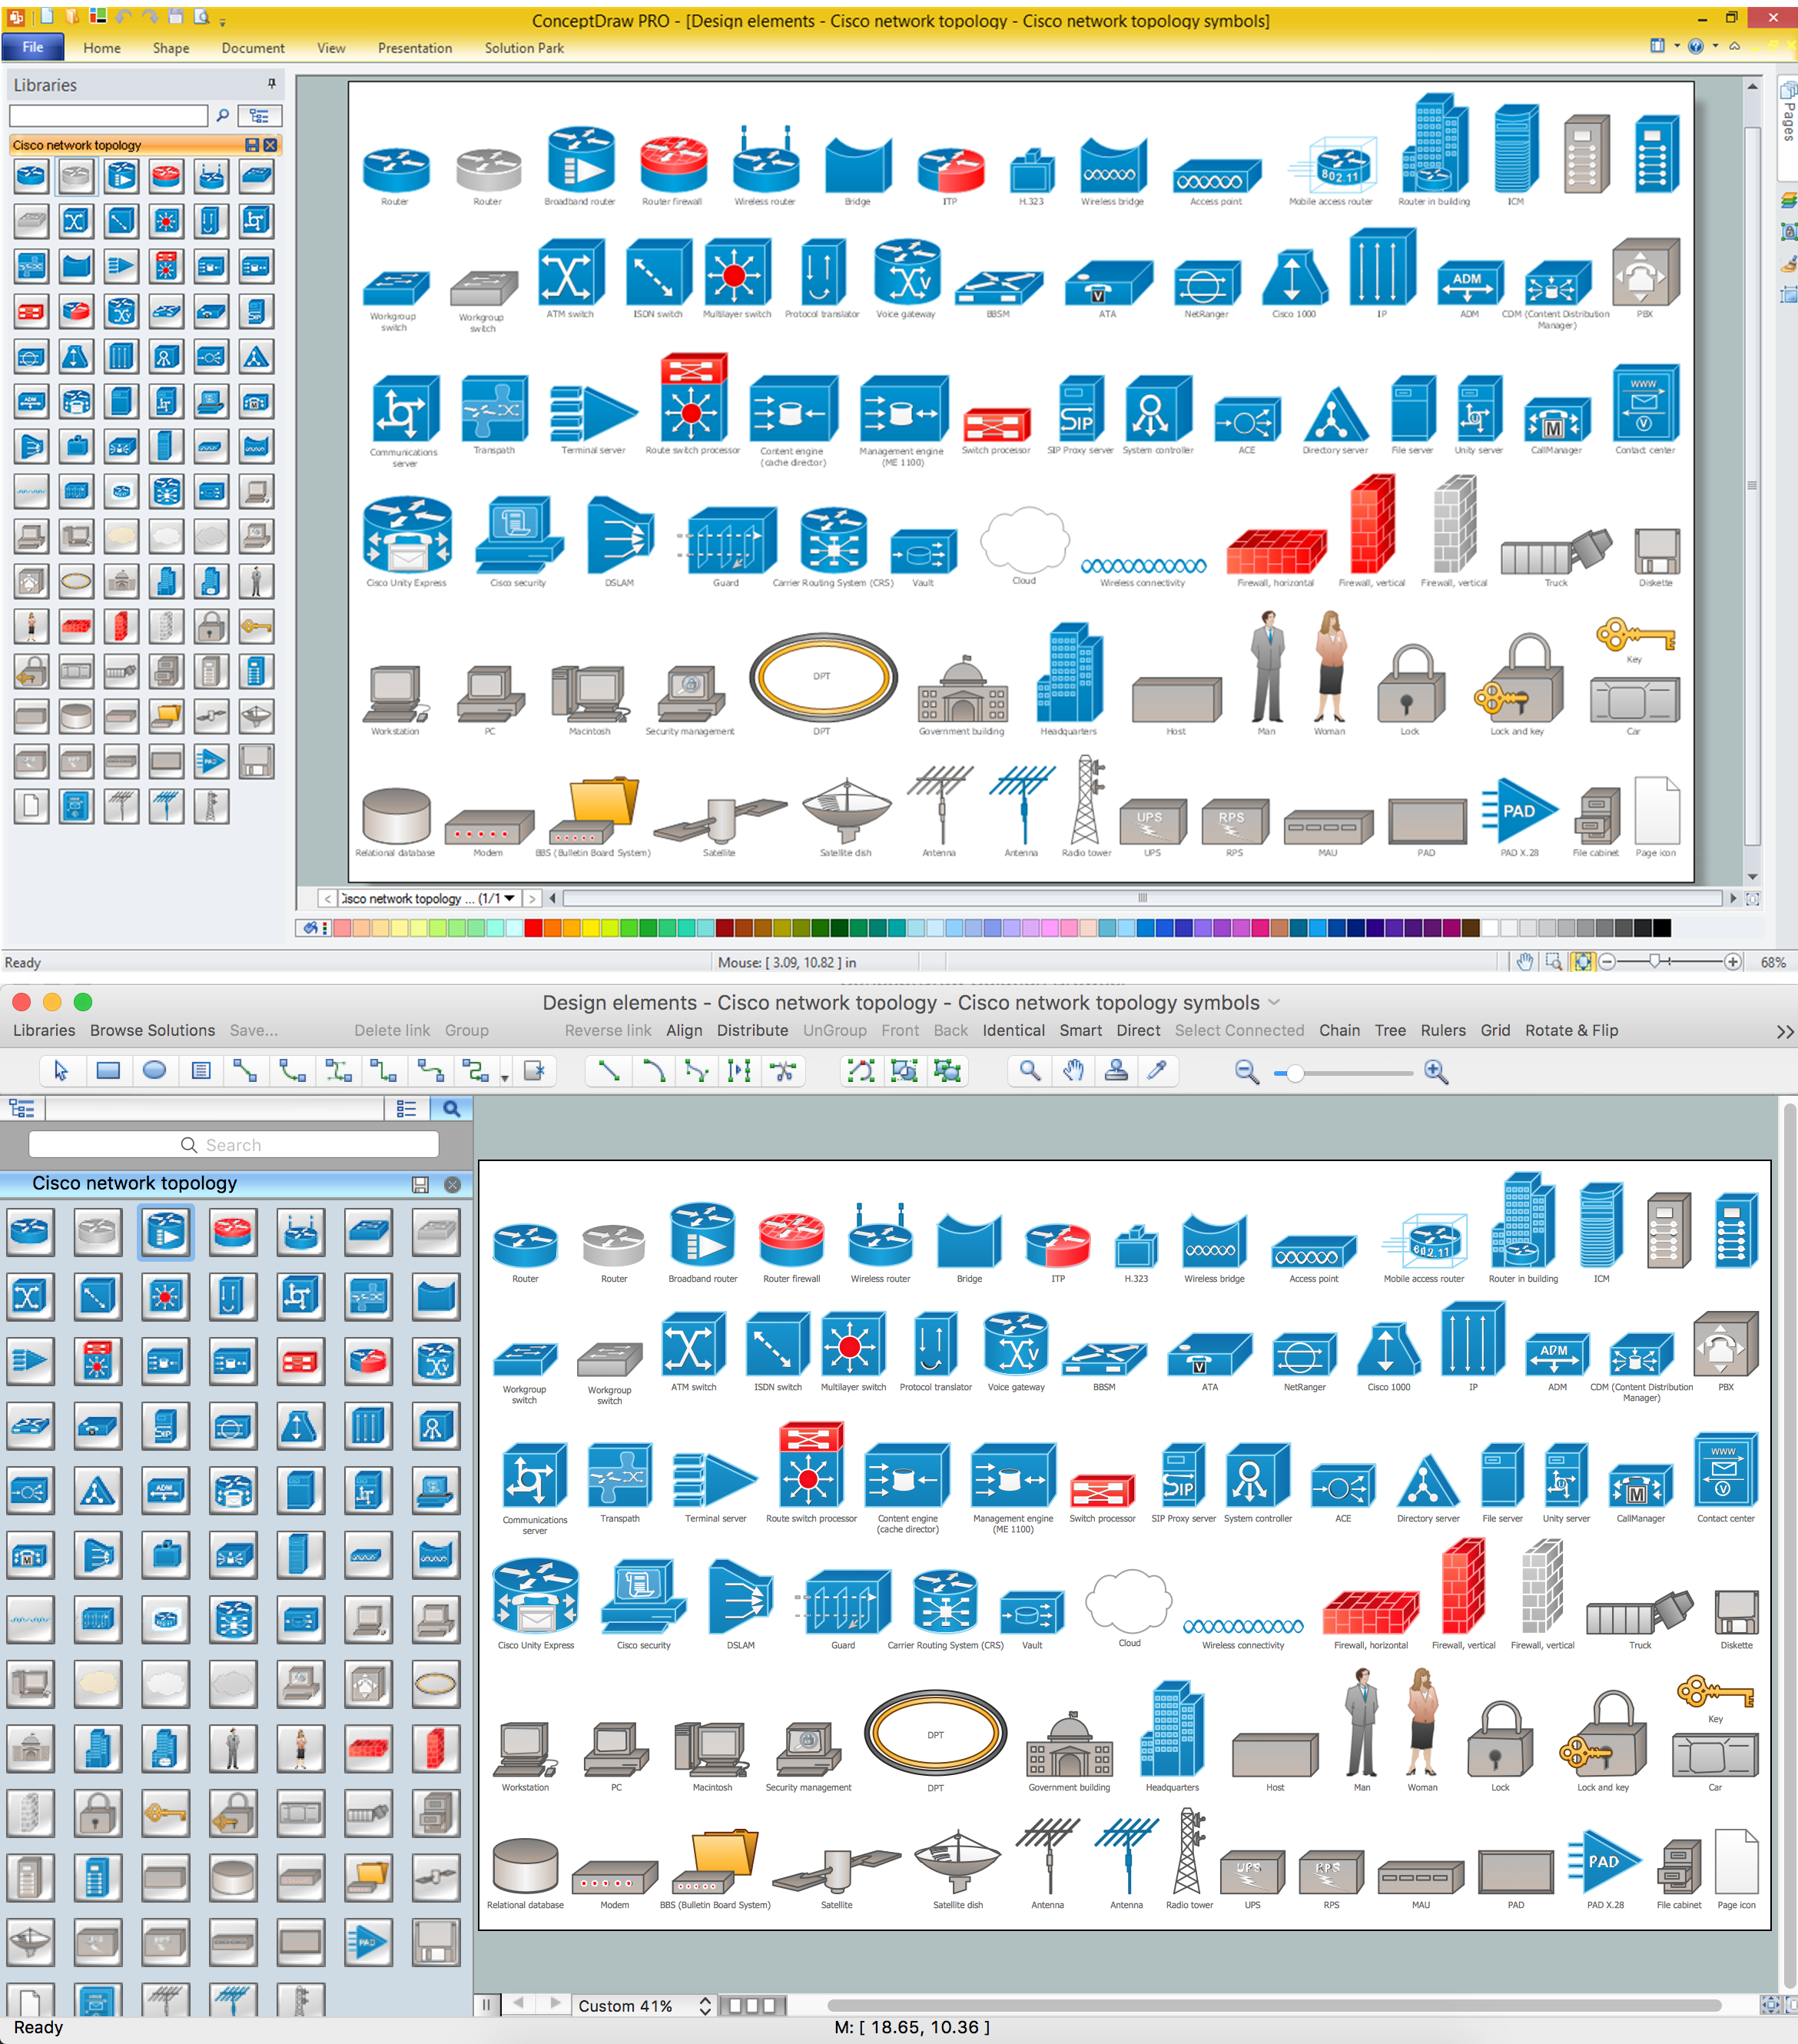 Cisco Network Design. Cisco icons, shapes, stencils, symbols and ...